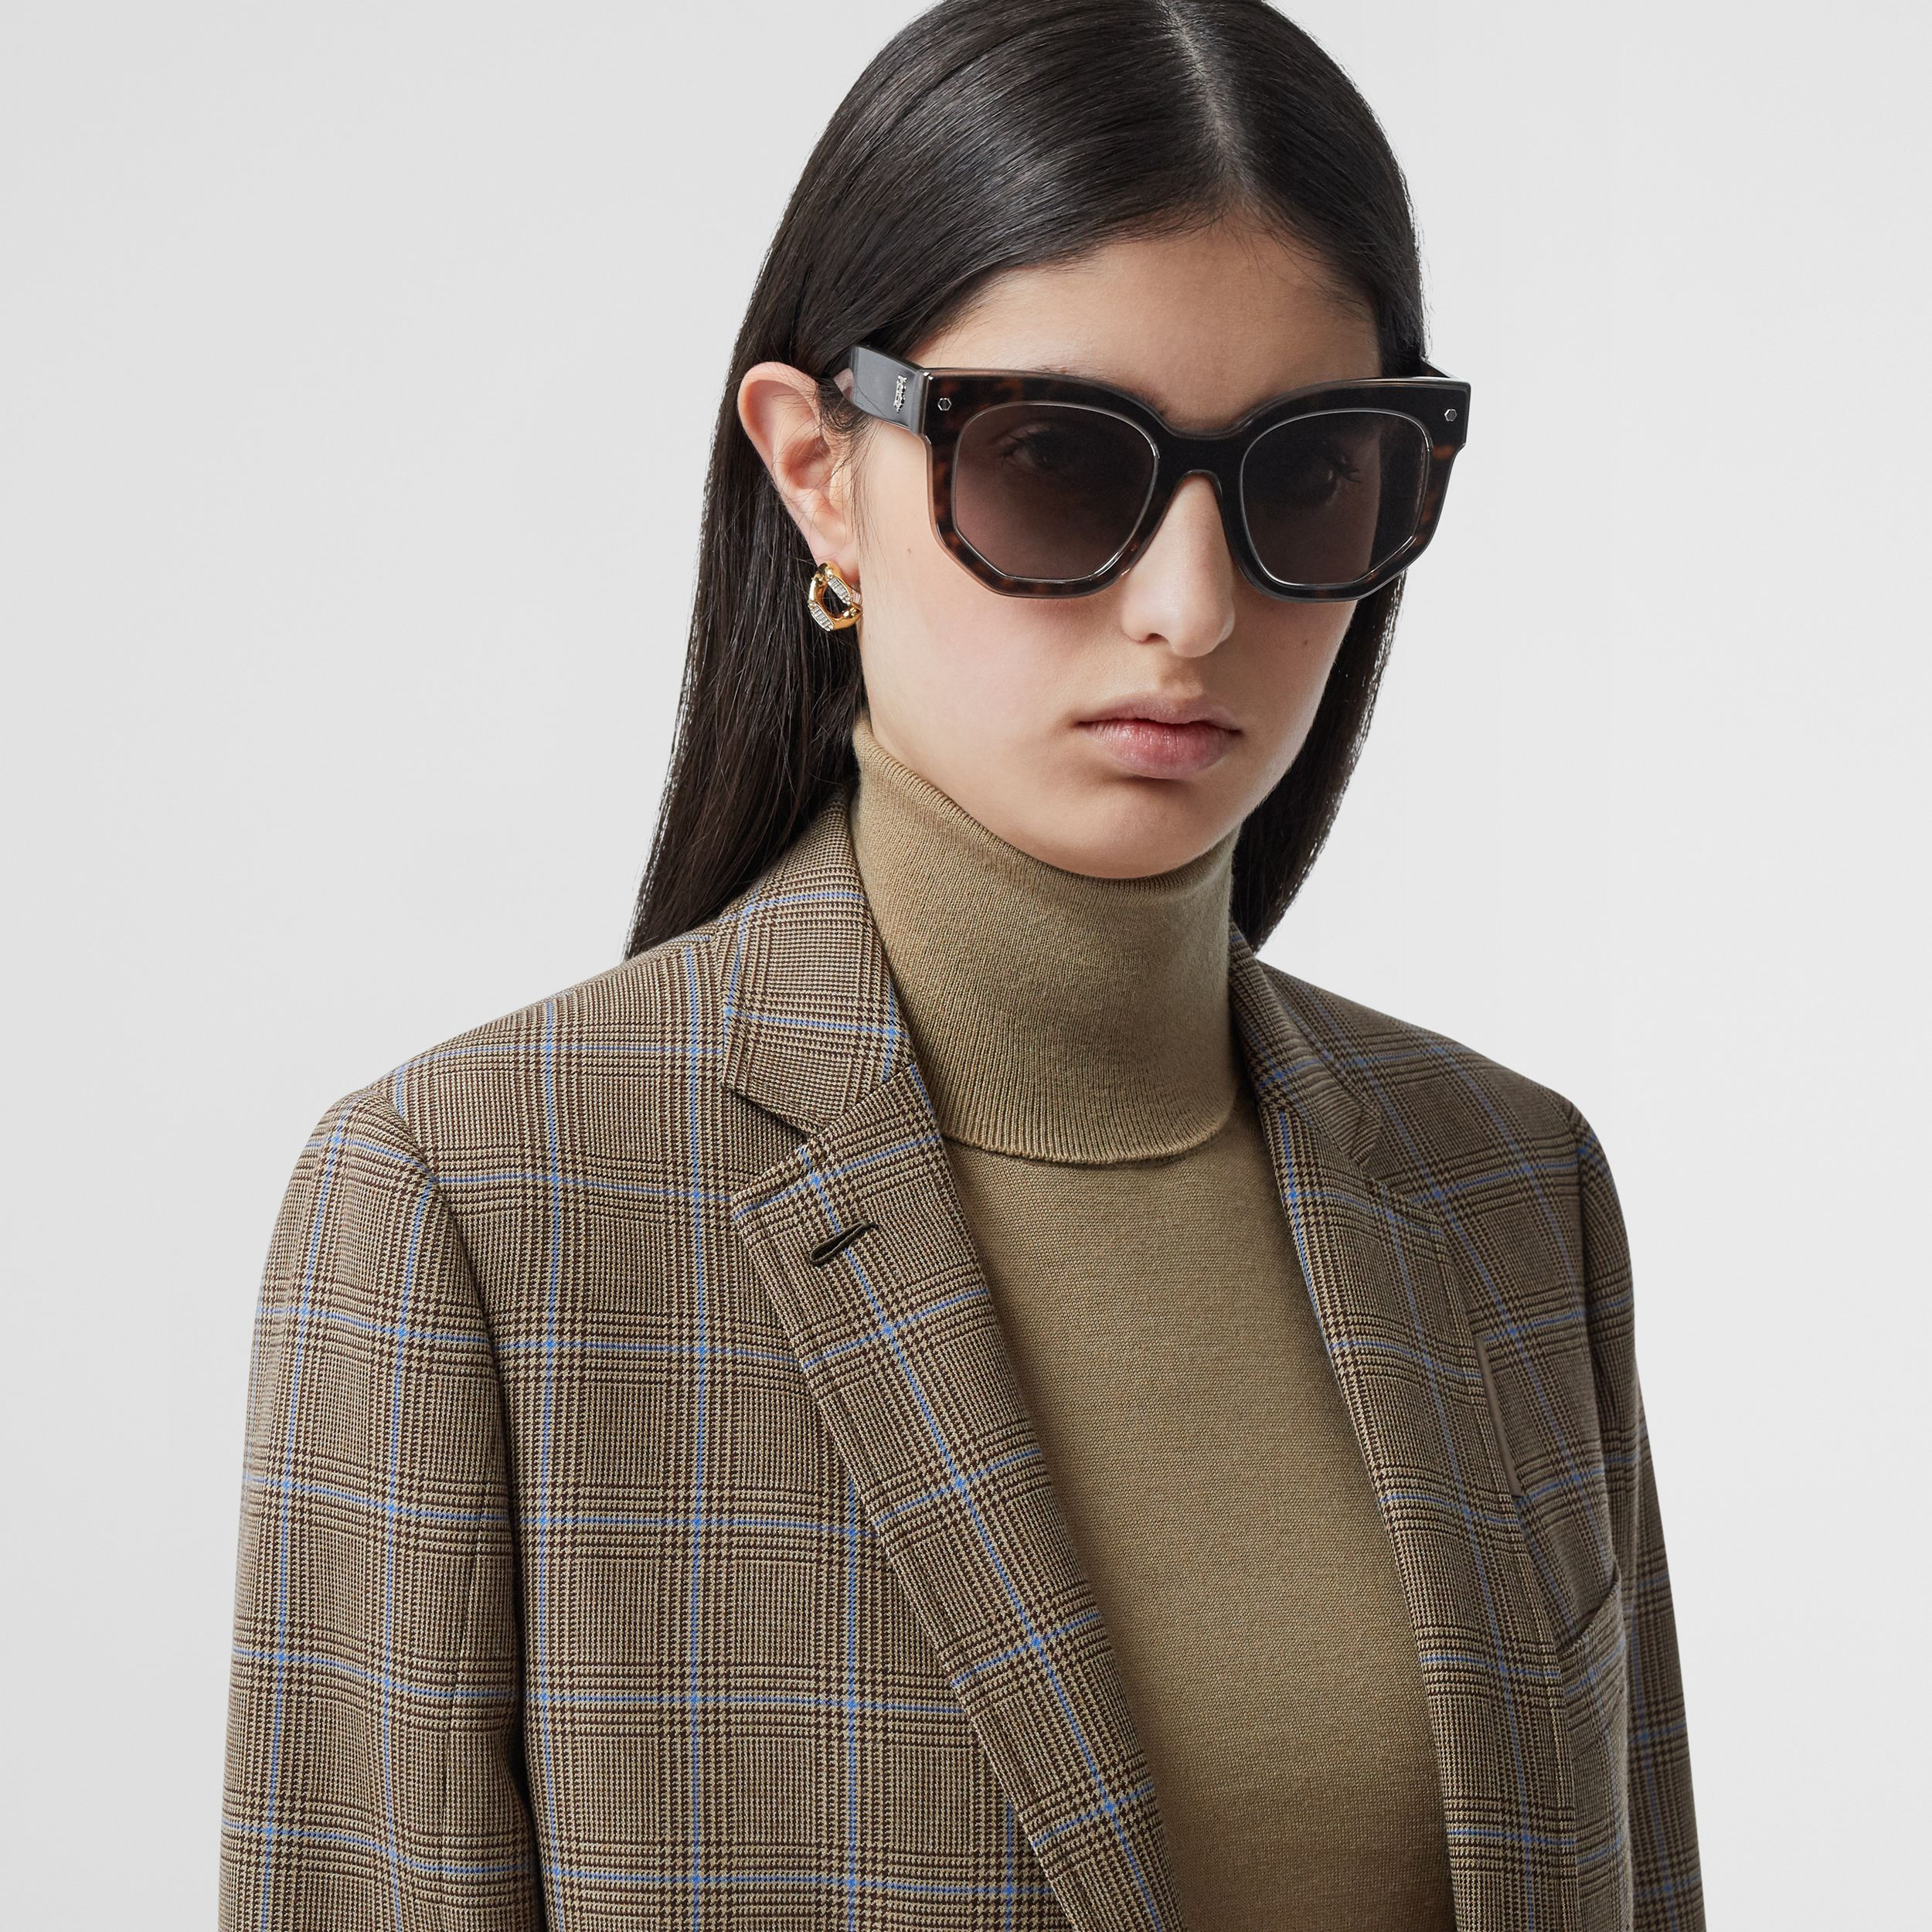 Geometric Frame Sunglasses in Tortoiseshell - Women | Burberry - 3